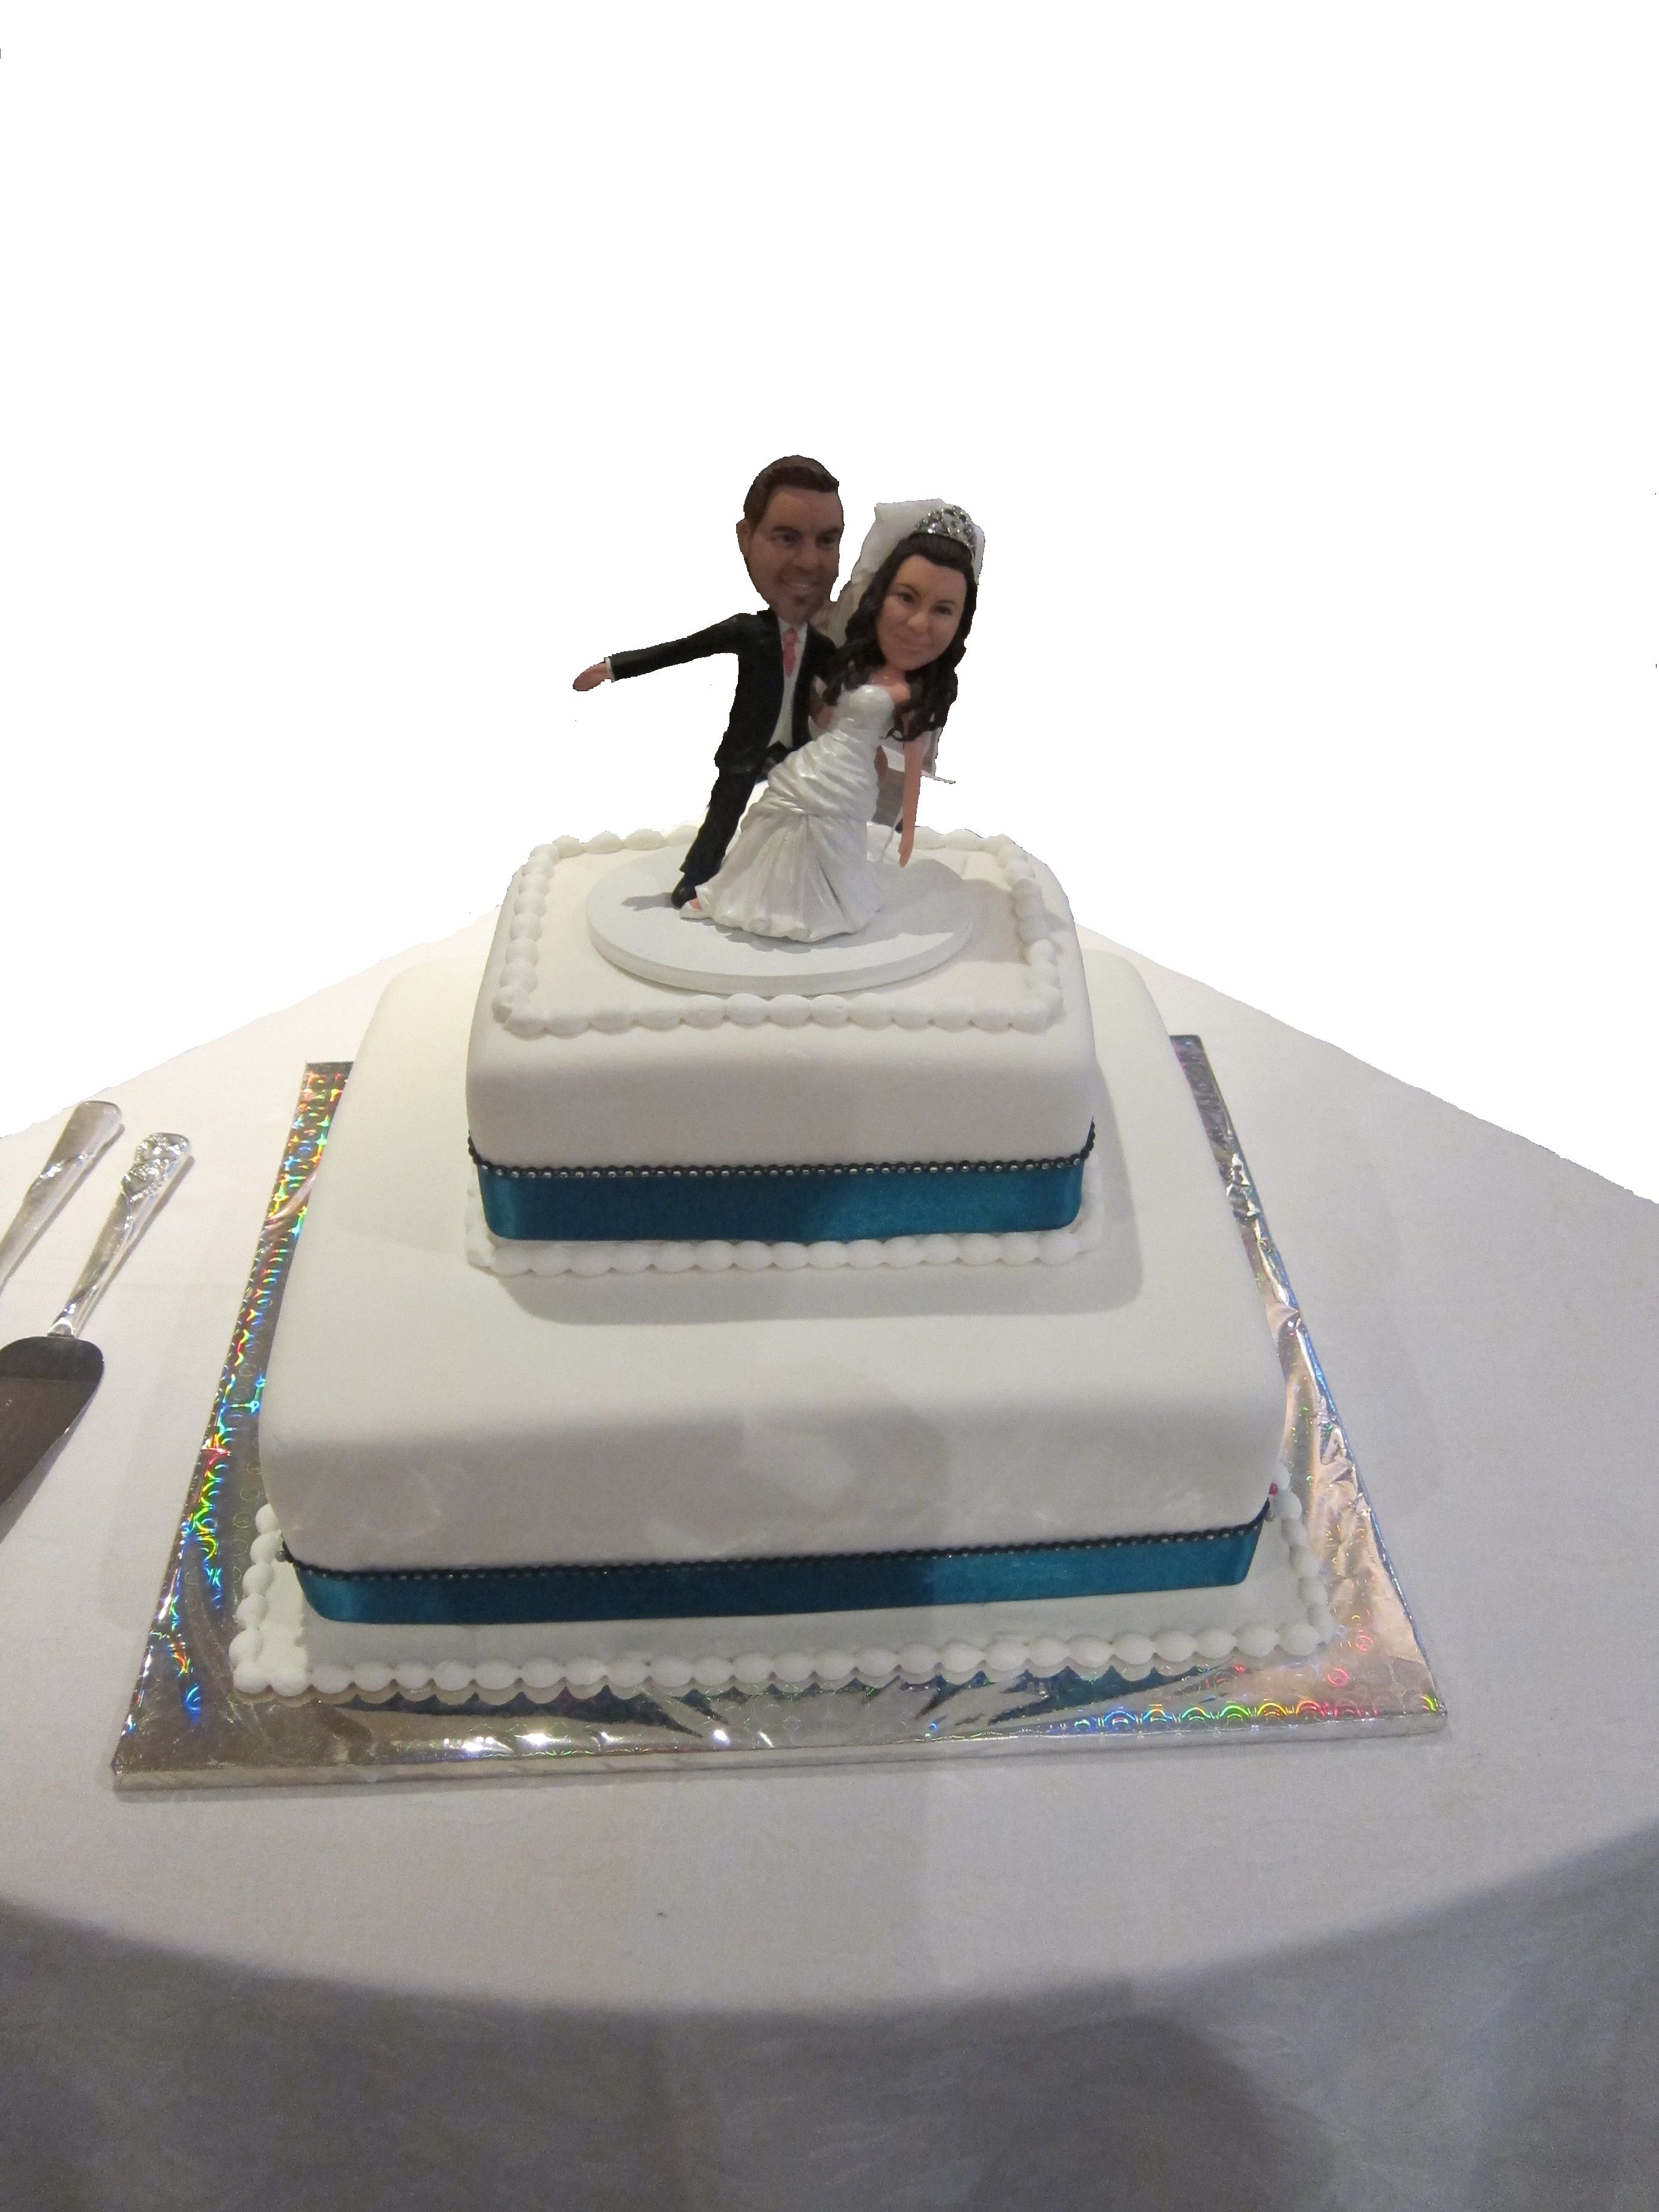 2 Tier White Wedding Cake with Blue Ribbon Lining | Wedding Cakes At ...